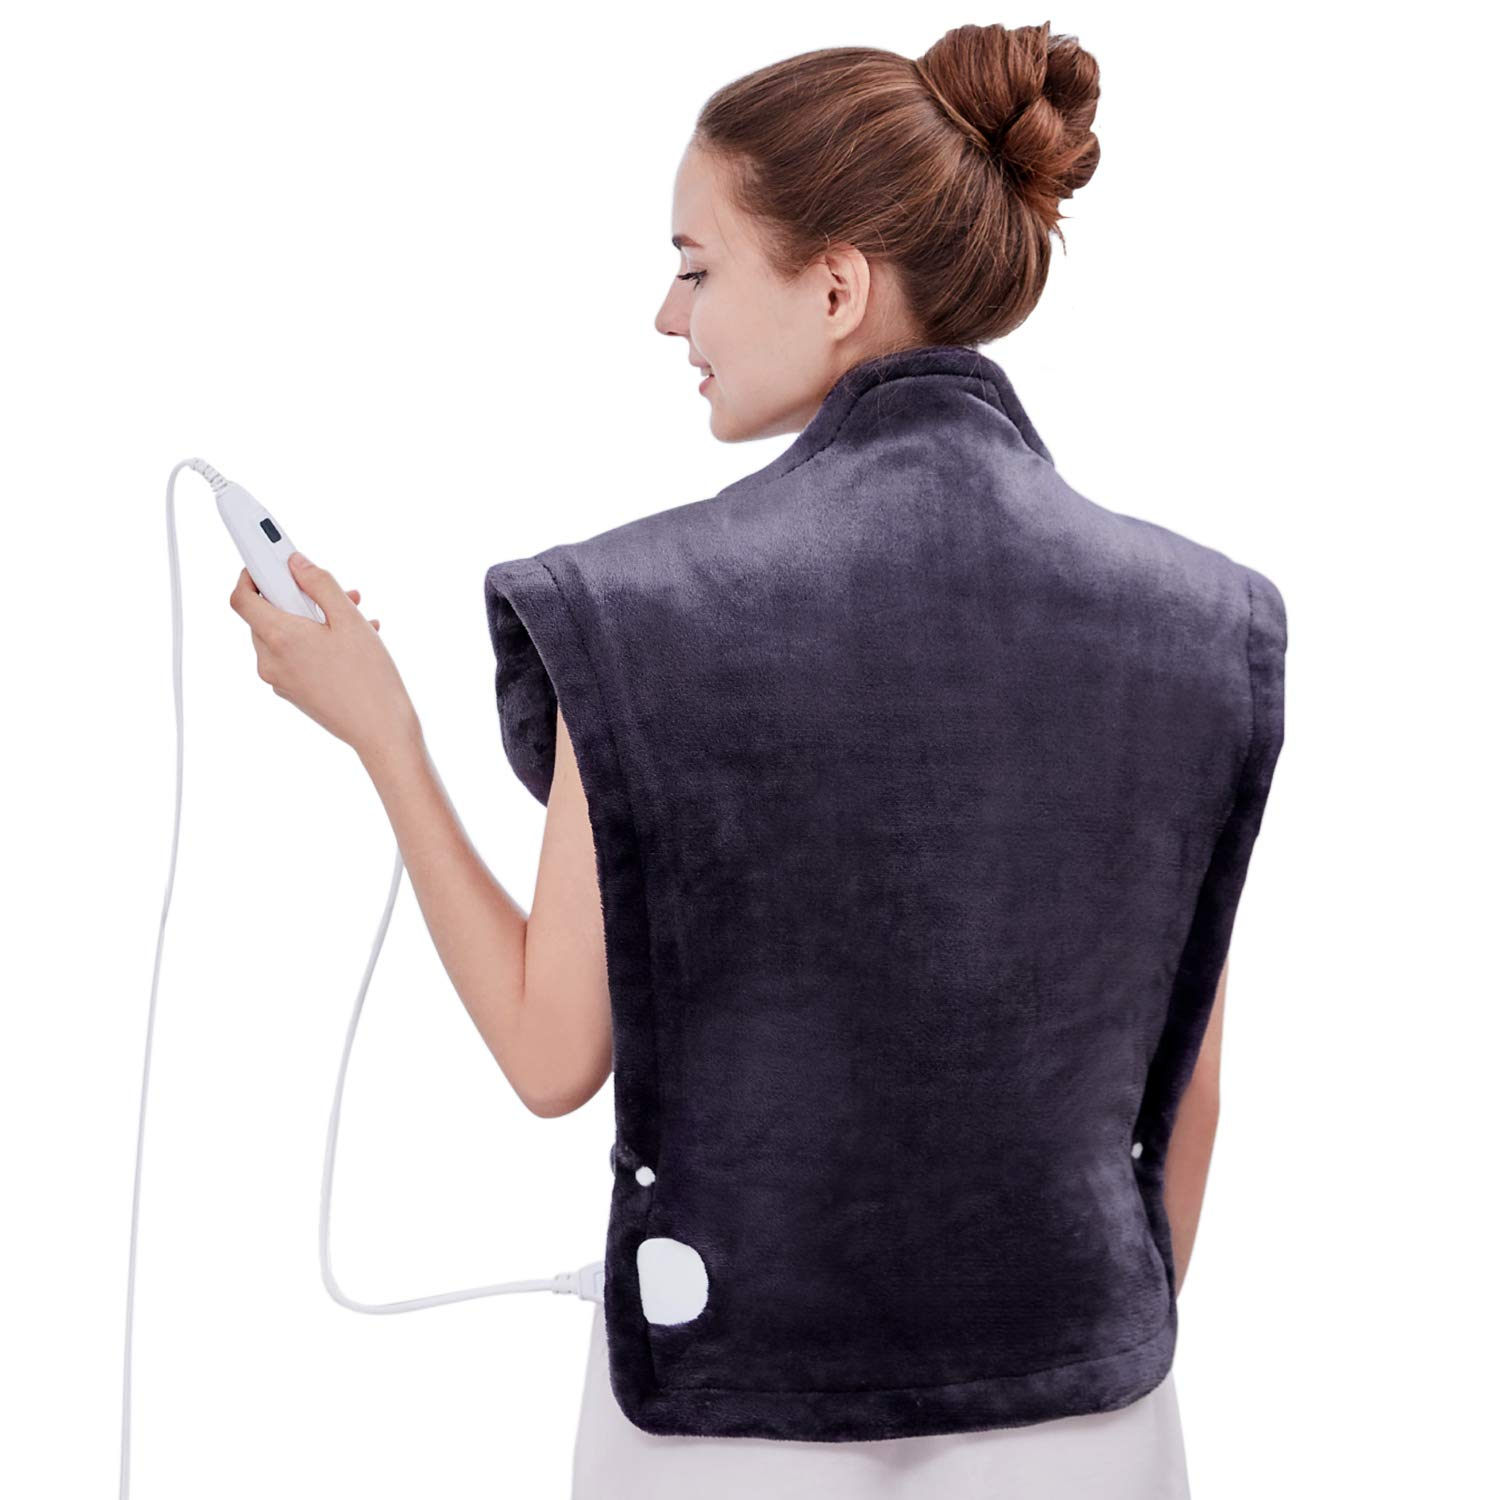 Utaxo Heating Pad Wrap, for Neck Shoulders Whole Back Pain Relief, Soothing Muscle Pain and Tension Relief Therapy, 6 Electric Temperature Options, 25 x 32'', XXX-Large by Utaxo